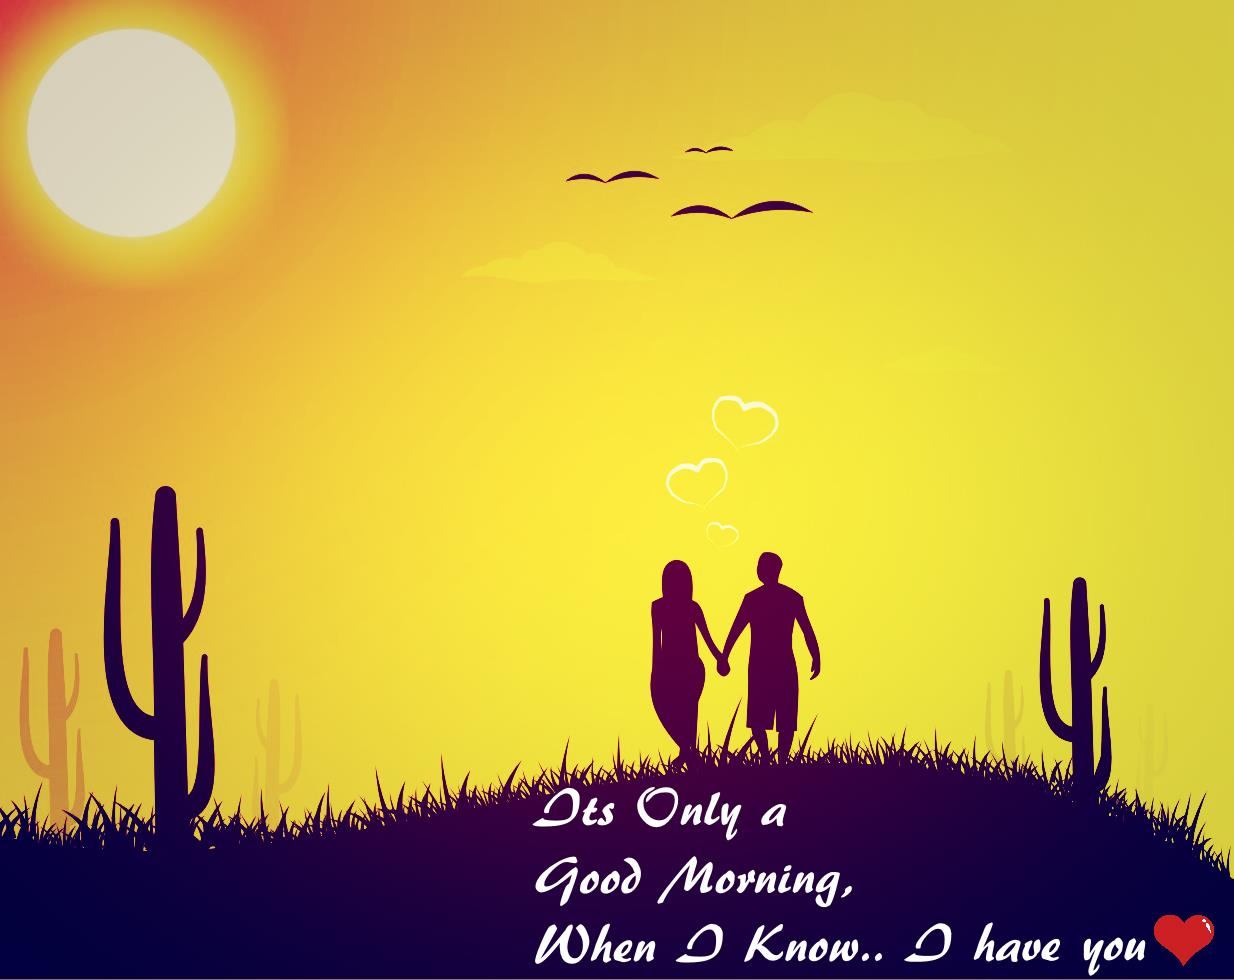 Love Good Morning Kiss Wallpaper : Good Morning Wallpapers Free Download